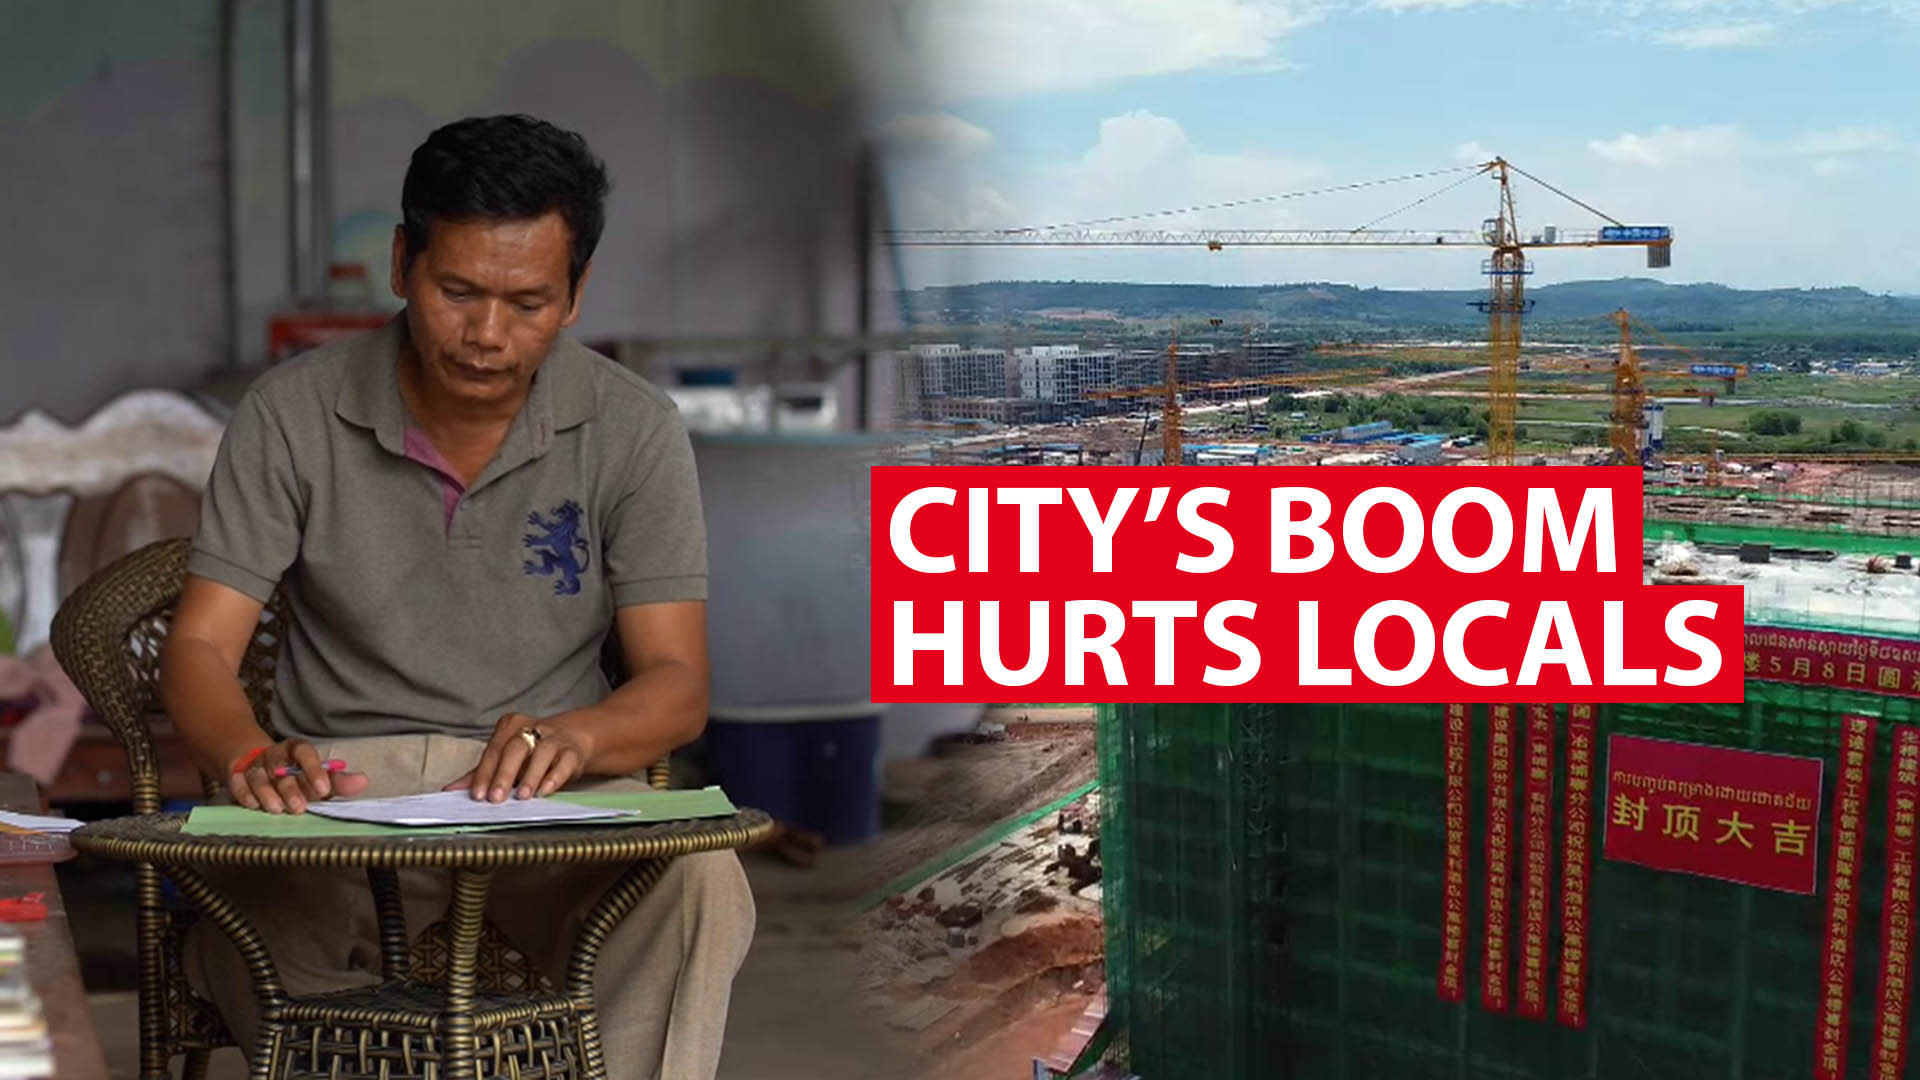 City's boom hurts locals